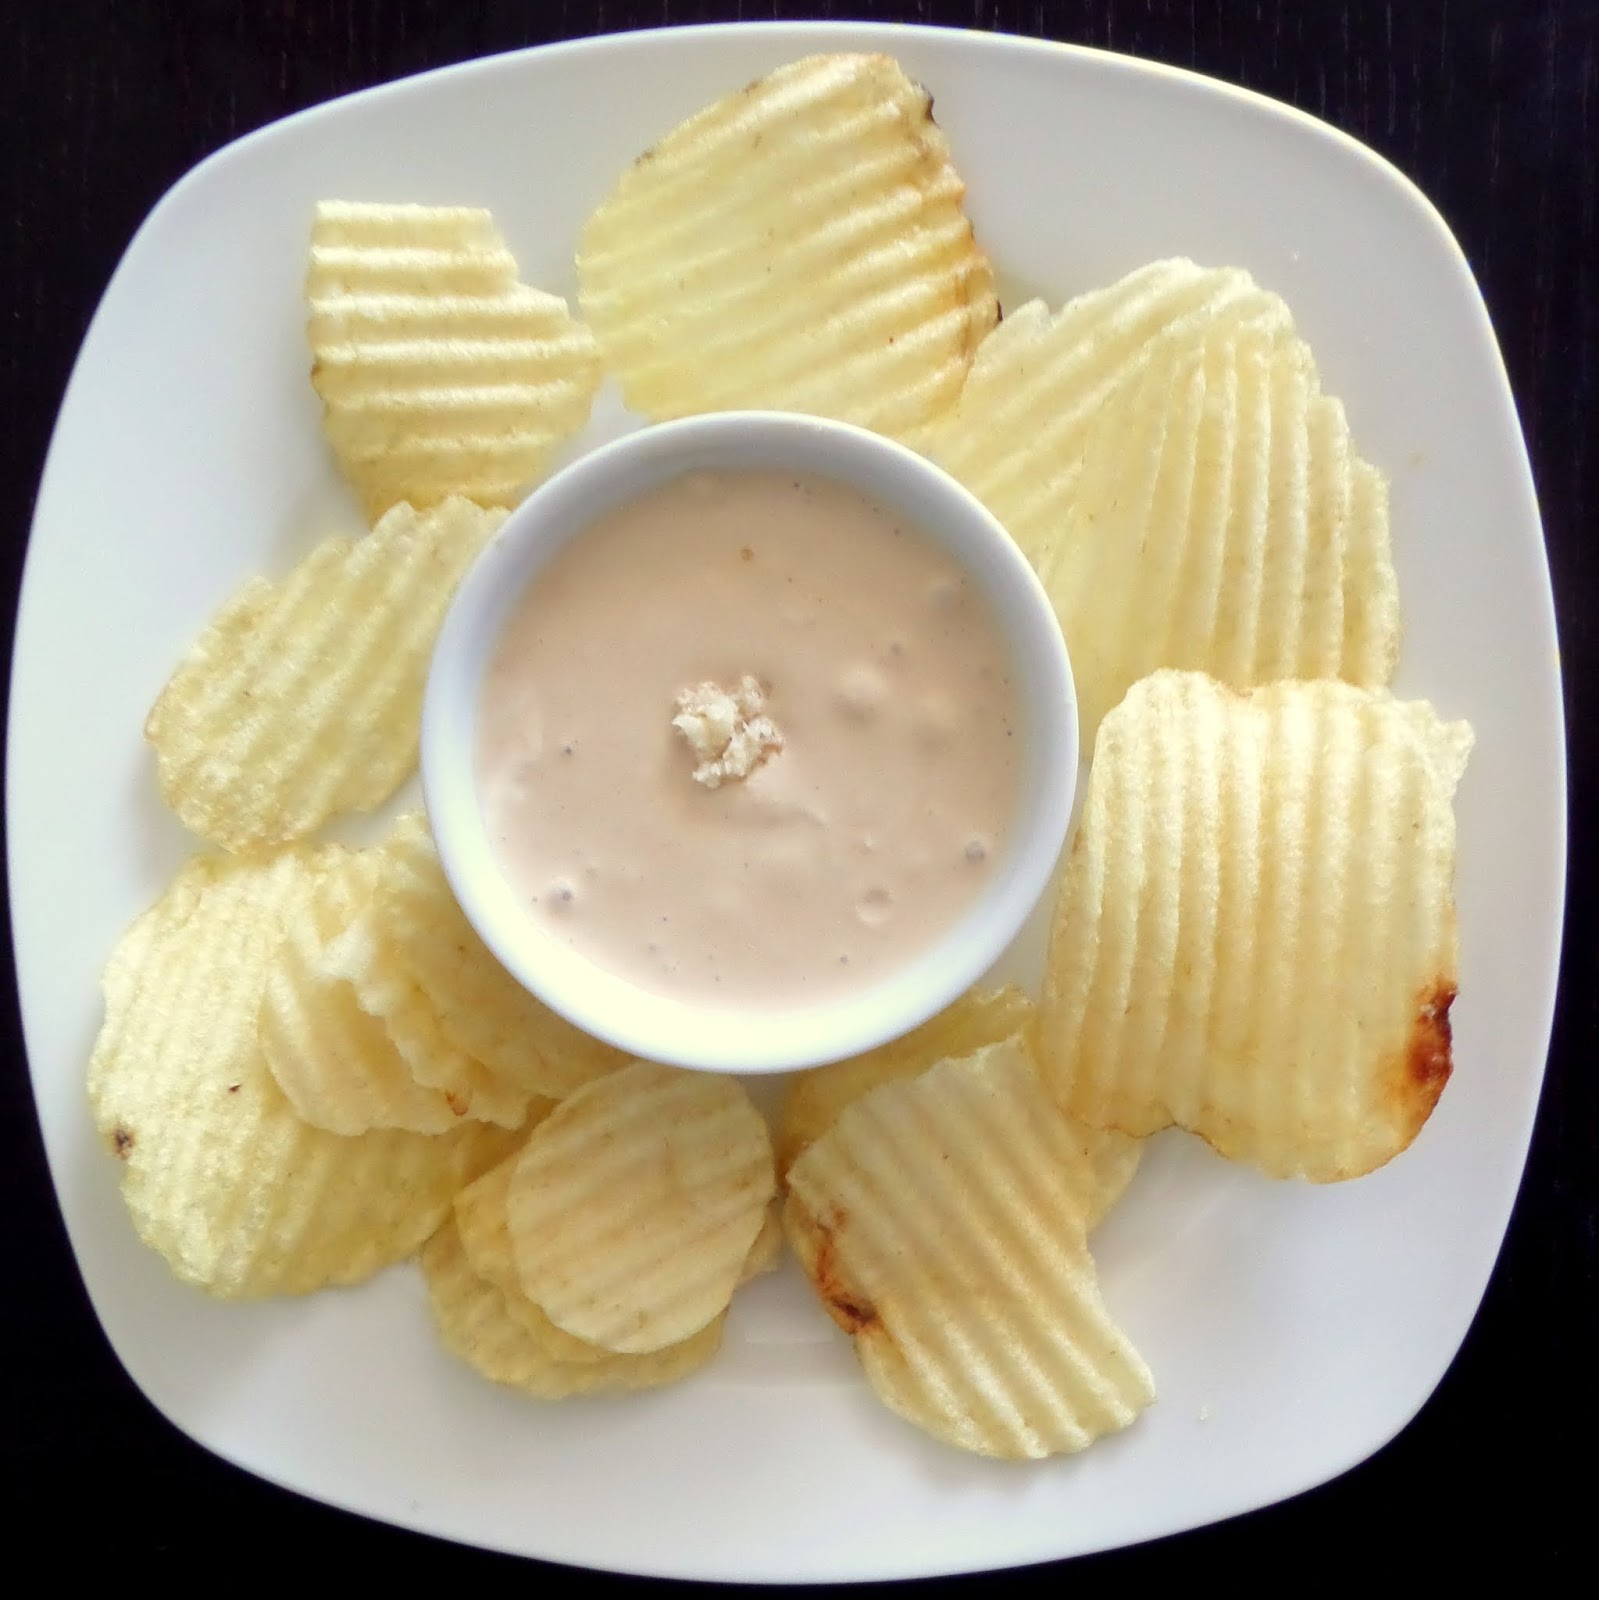 Beefy Horseradish Dip:  Spicy and pungent horseradish mixed with beef bullion and sour cream for a delicious chip dip.